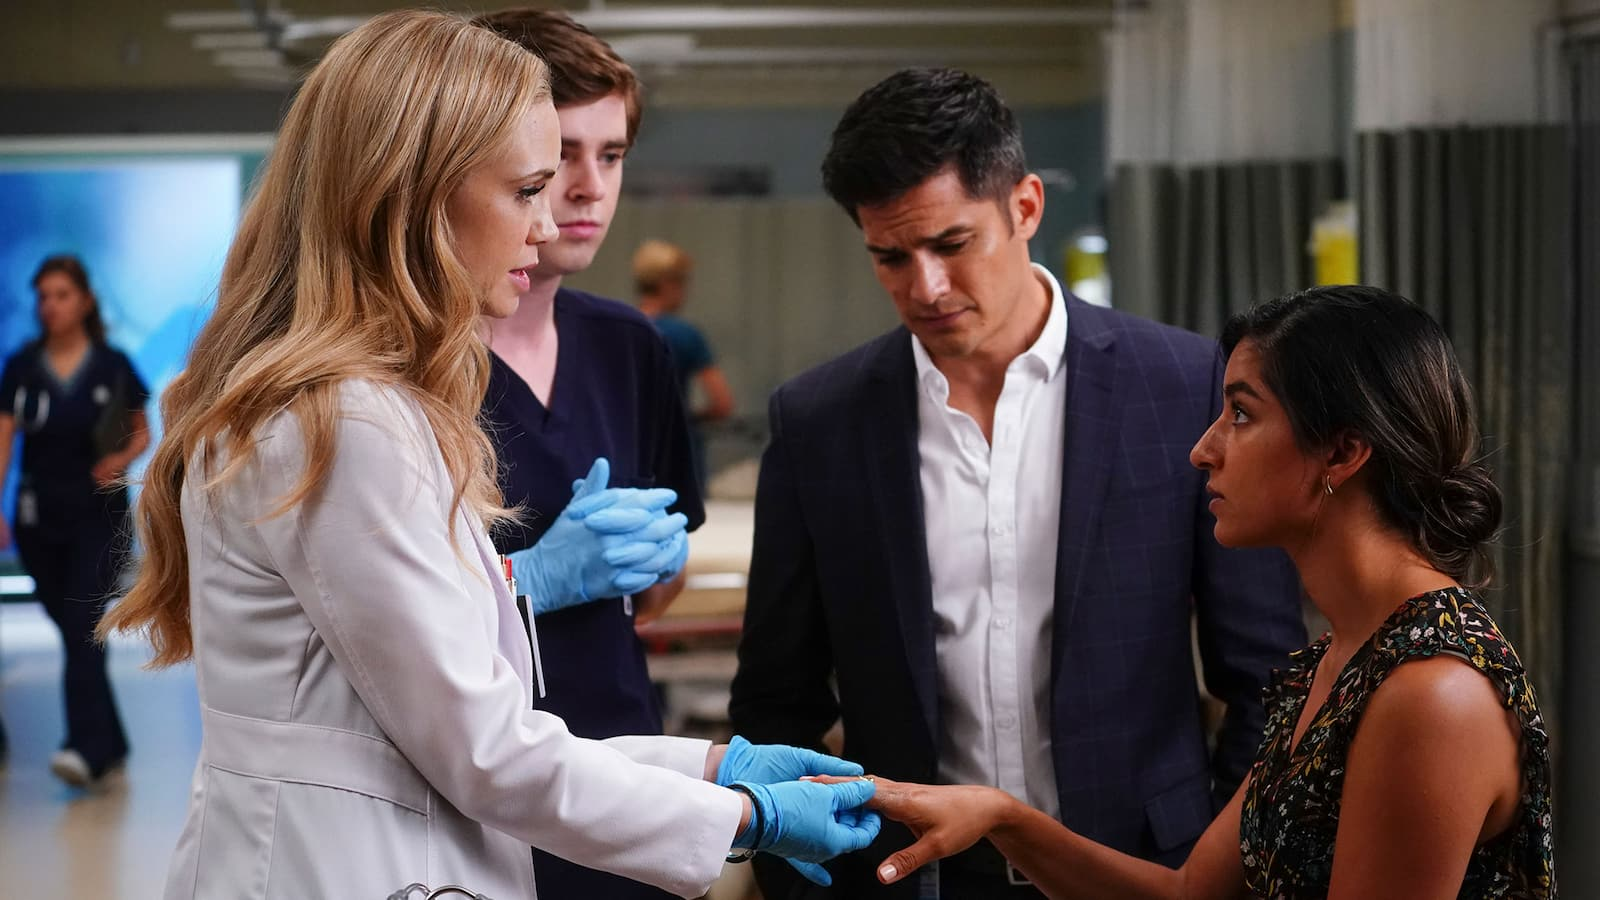 the-good-doctor/sesong-2/episode-6